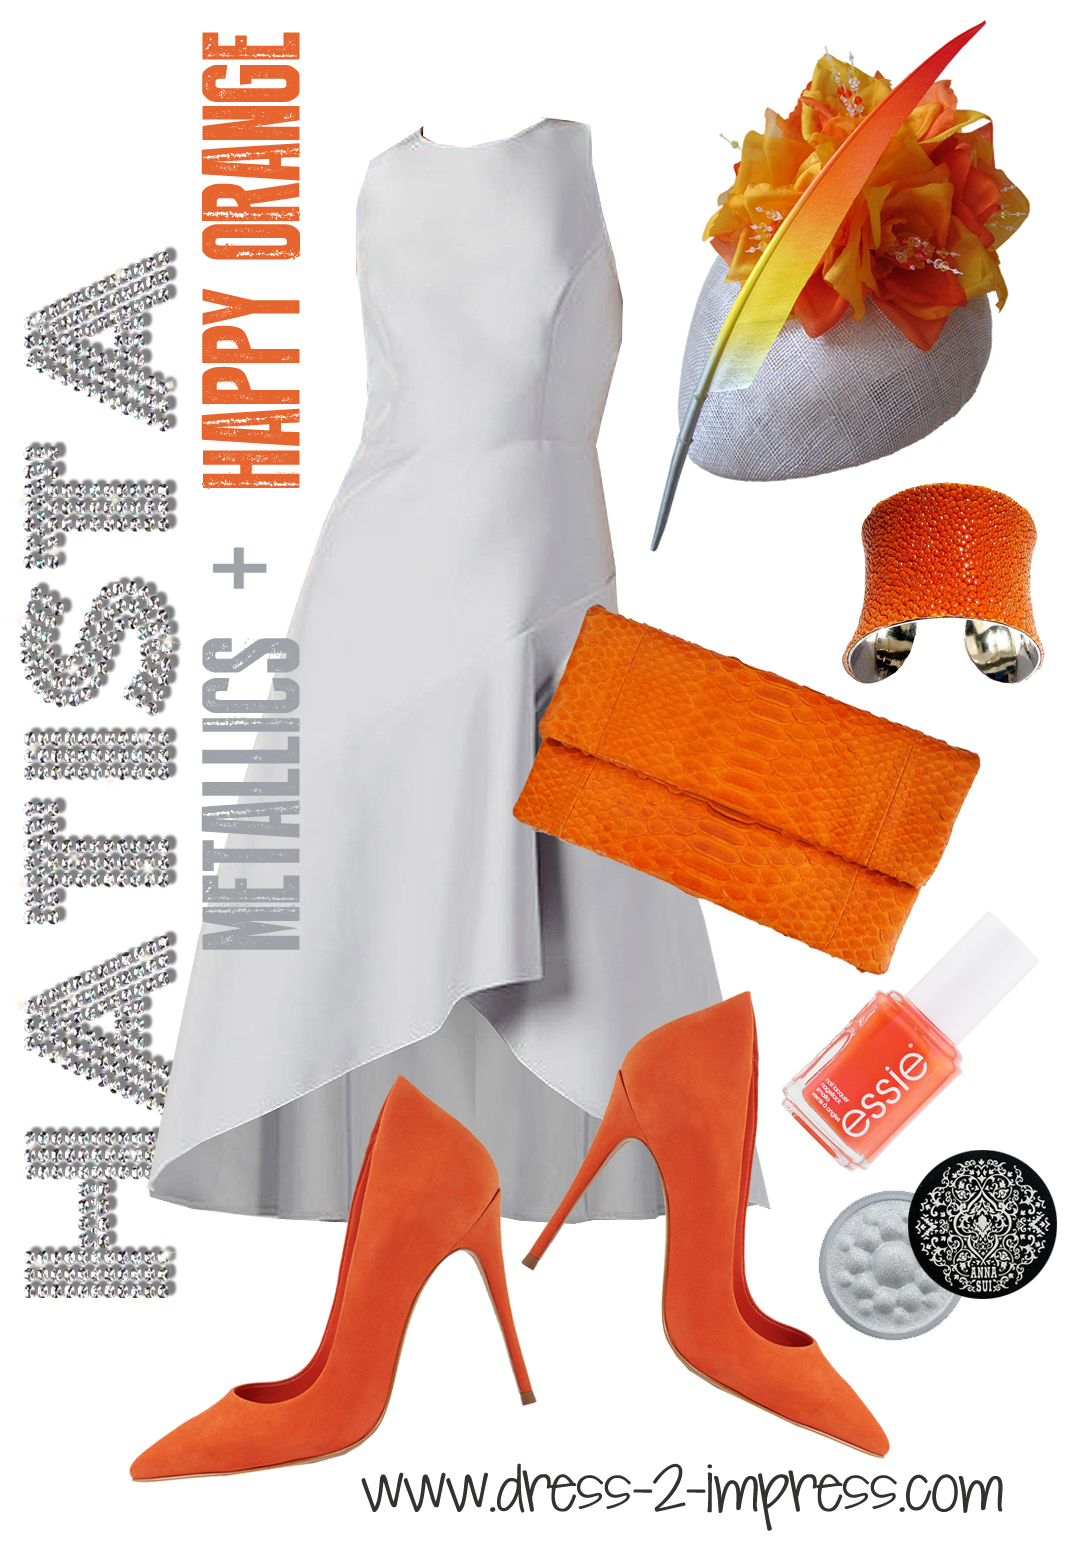 Outfit ideas for Royal Ascot, What to wear for Royal Ascot Ladies Day, Epsom Derby, or Summer Weddings. How to Wear Orange, from THE HATISTA www.dress-2-impress.com Outfit Ideas, Outfit Inspiration for the races